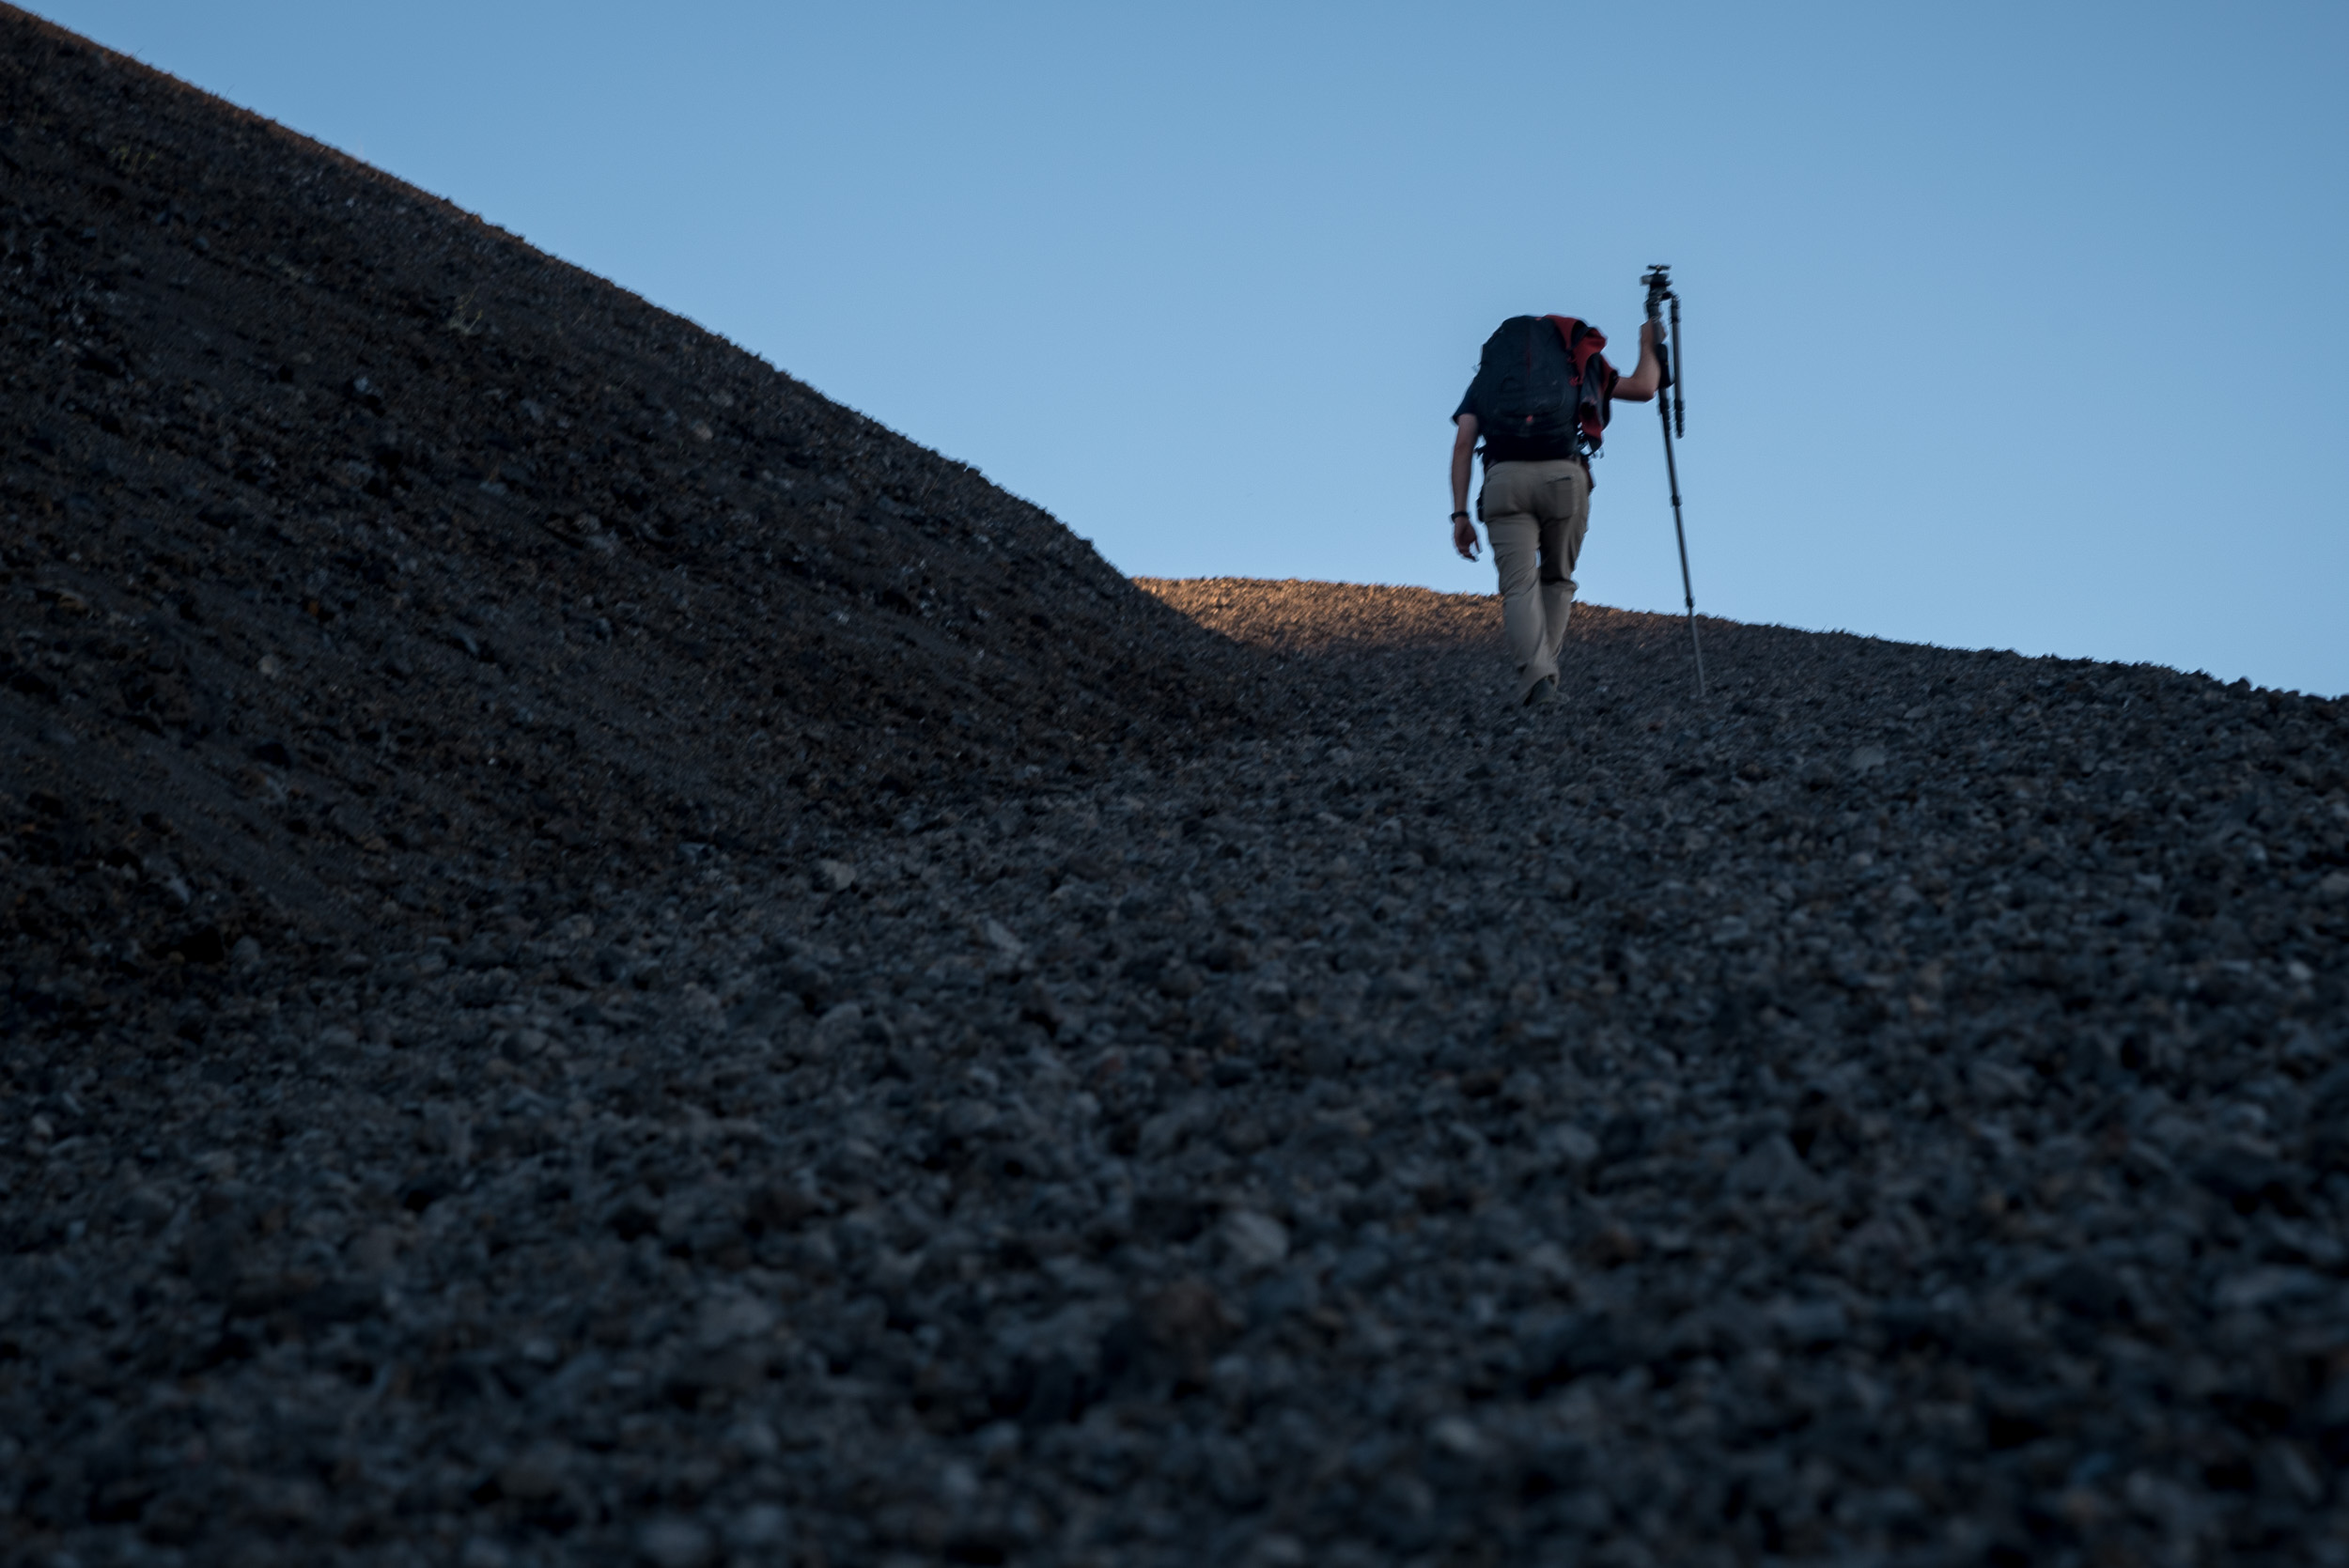 Type 2 Fun. Chris racing the sun to the top of Cinder Cone. Nikon D750,  24-120mm f/4  lens at 110mm. 1/60, f/7.1, ISO 100.